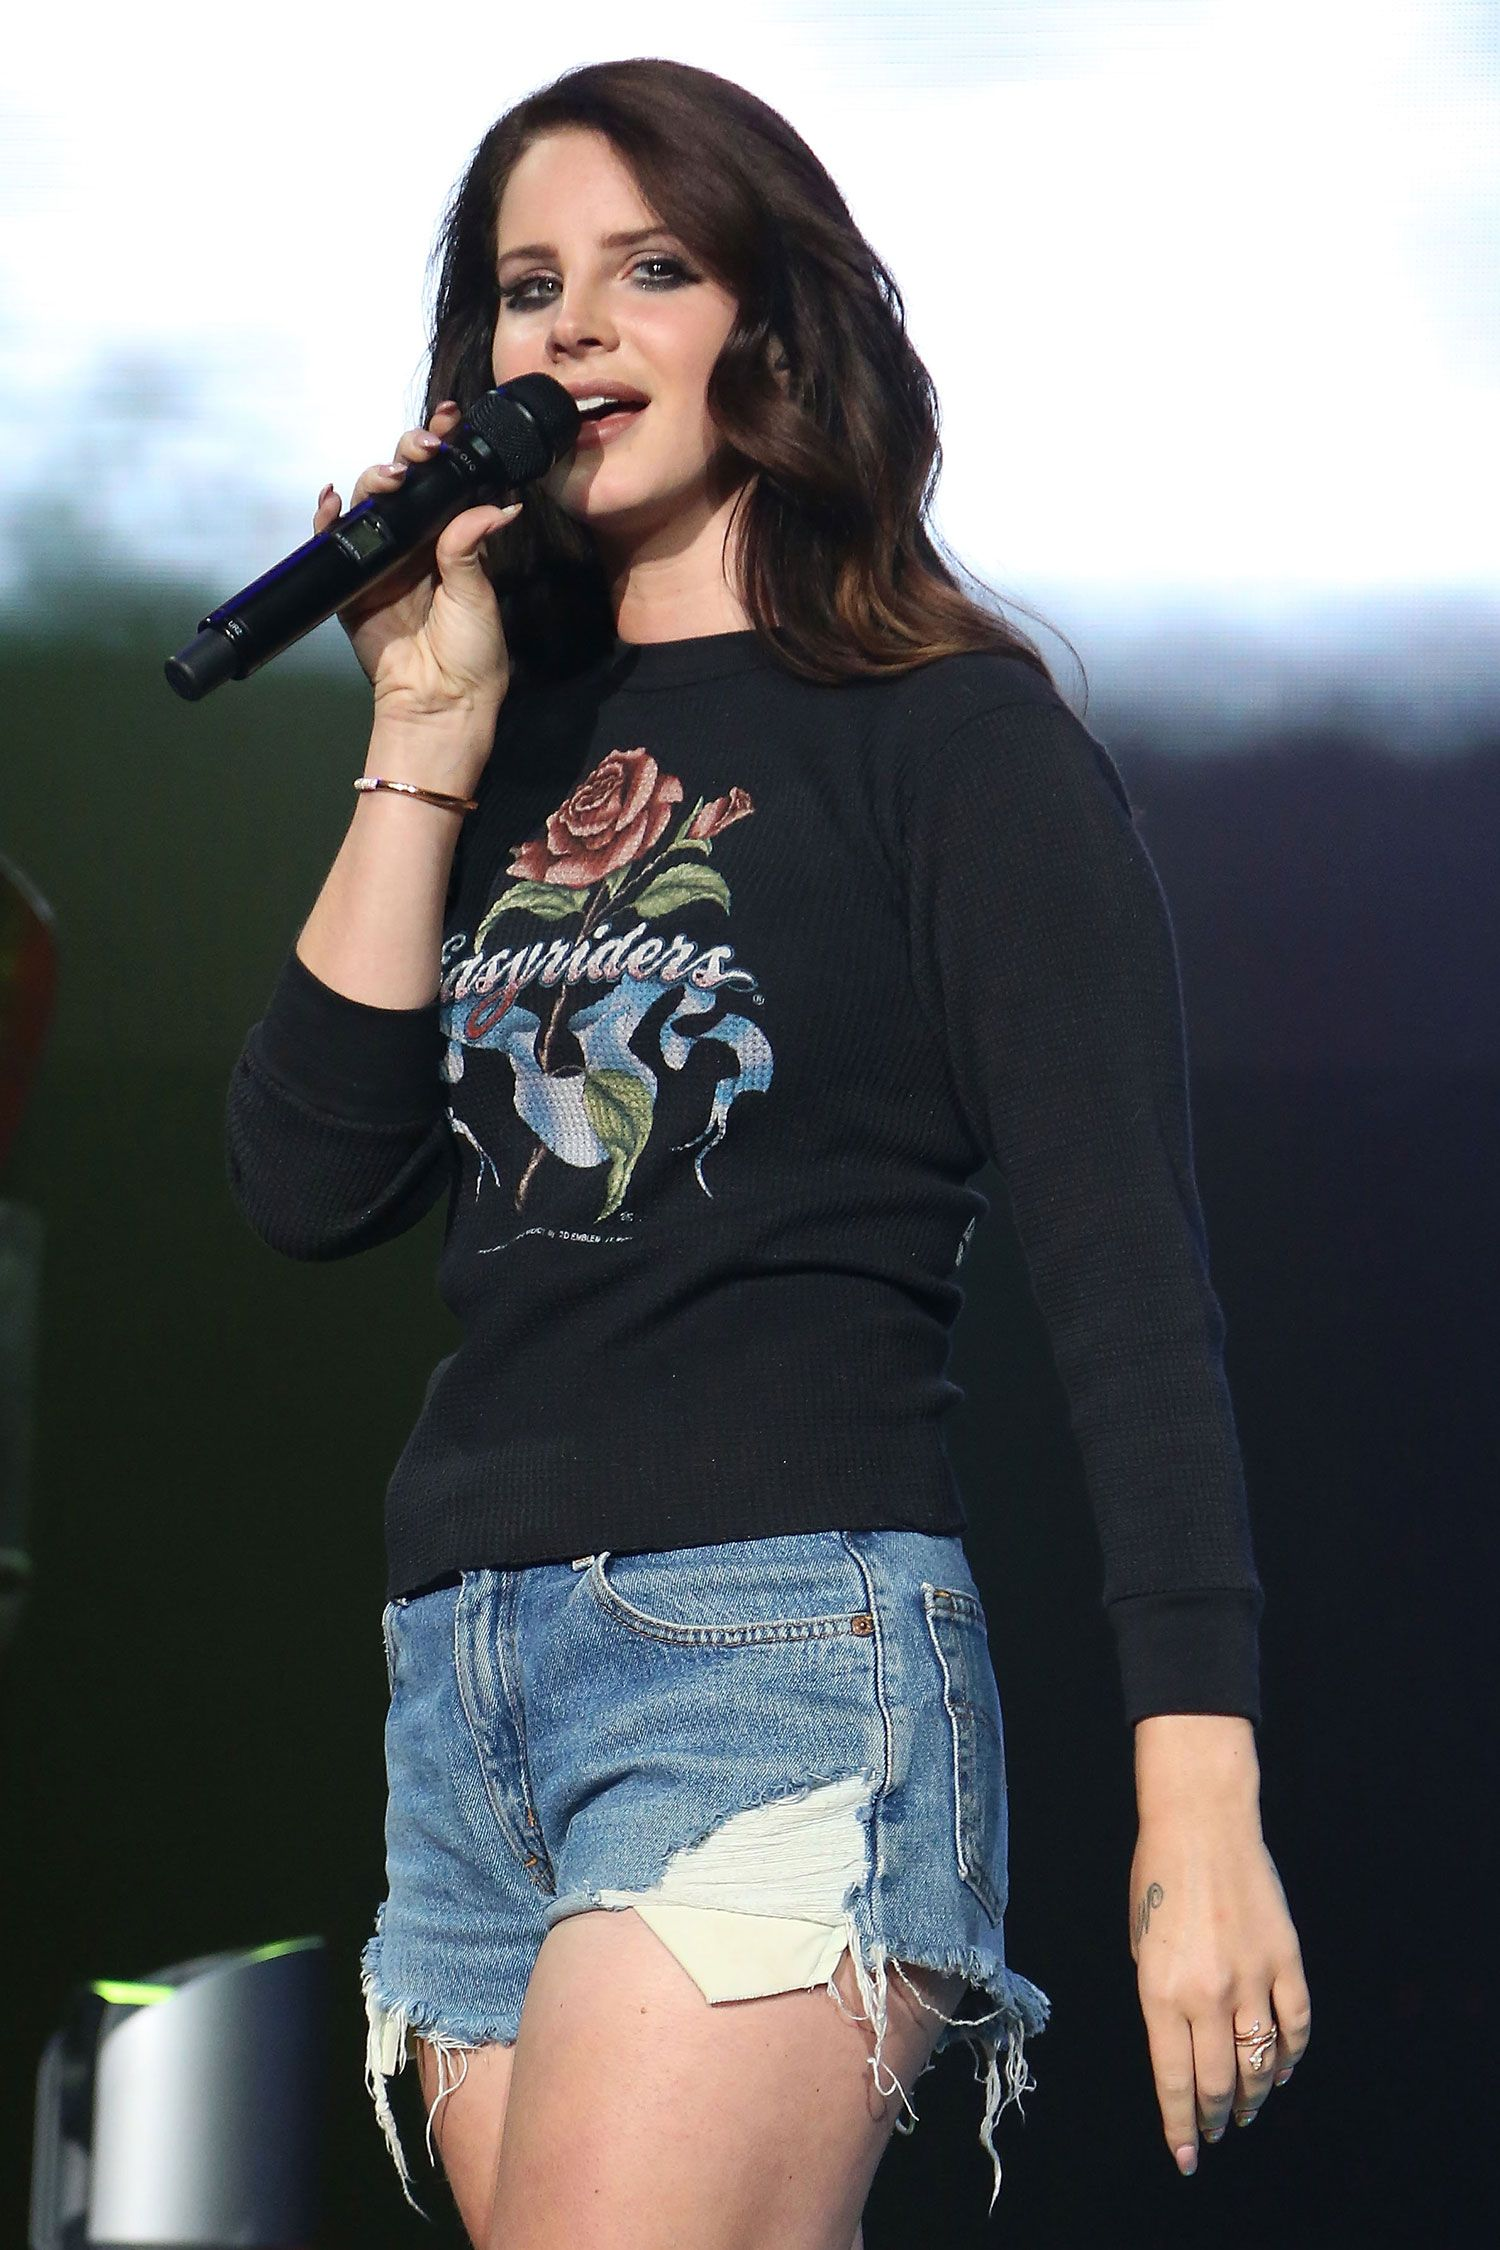 Lana Del Rey's Maleficent Track Gets the Remix Treatment